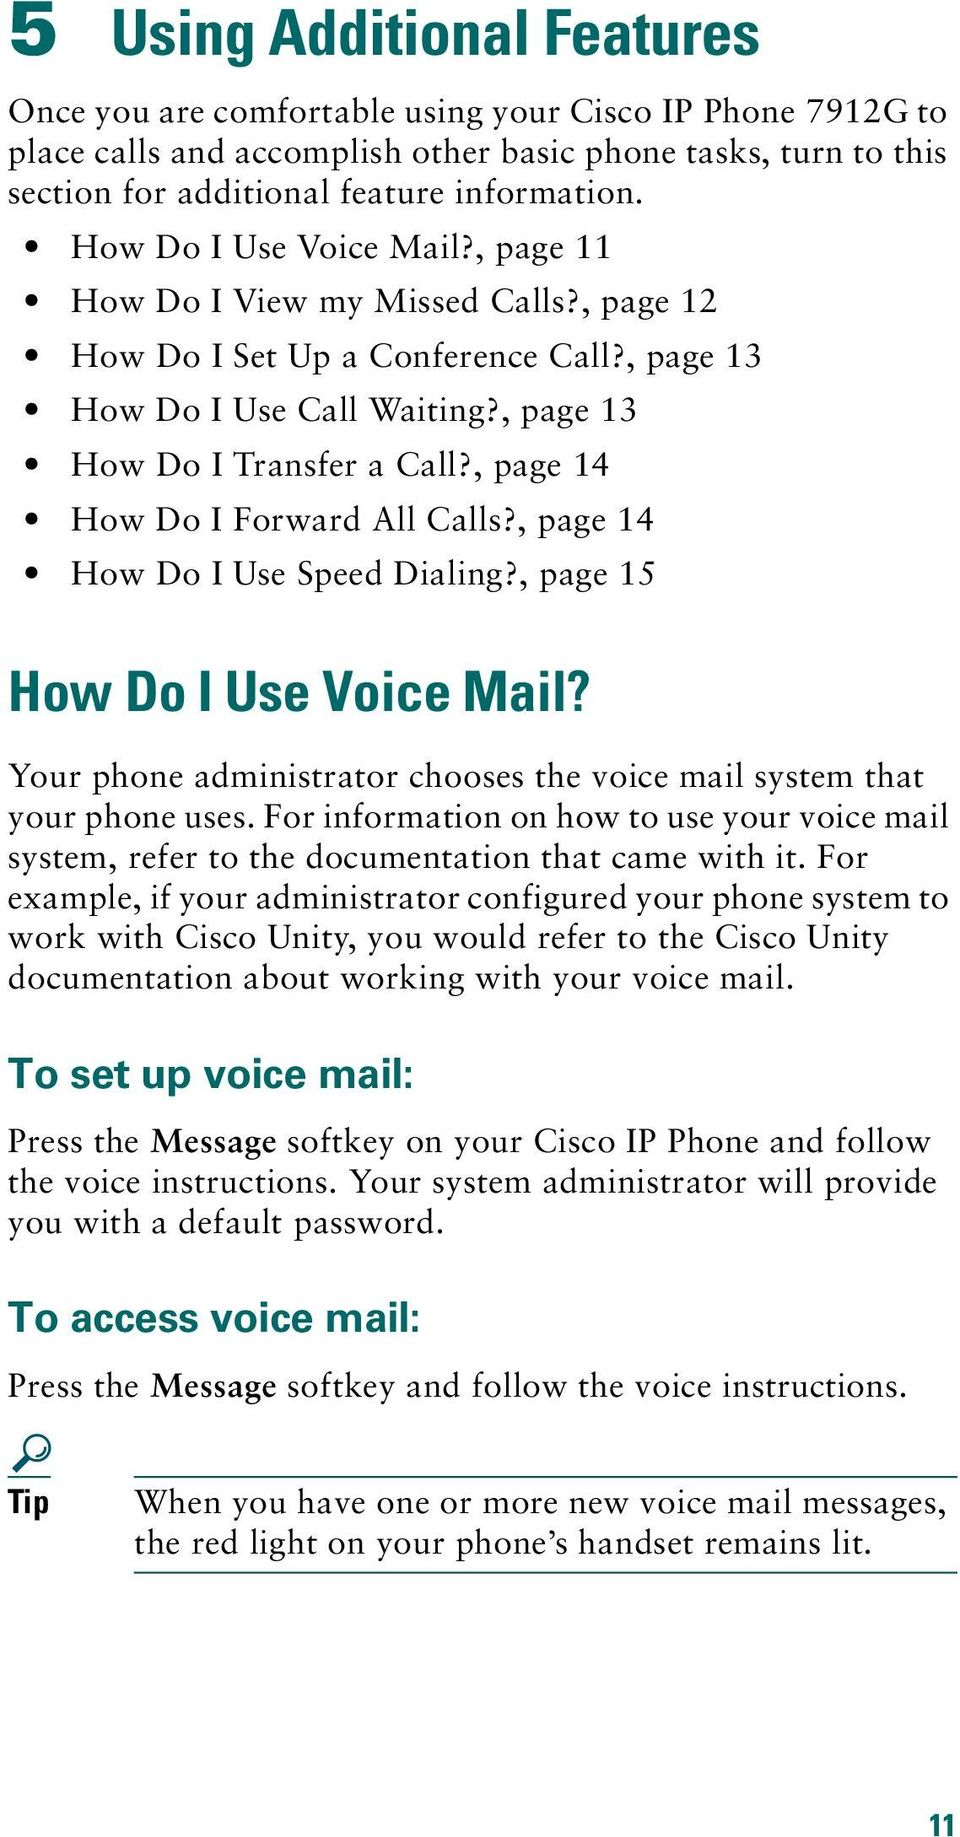 , page 14 How Do I Forward All Calls?, page 14 How Do I Use Speed Dialing?, page 15 How Do I Use Voice Mail? Your phone administrator chooses the voice mail system that your phone uses.